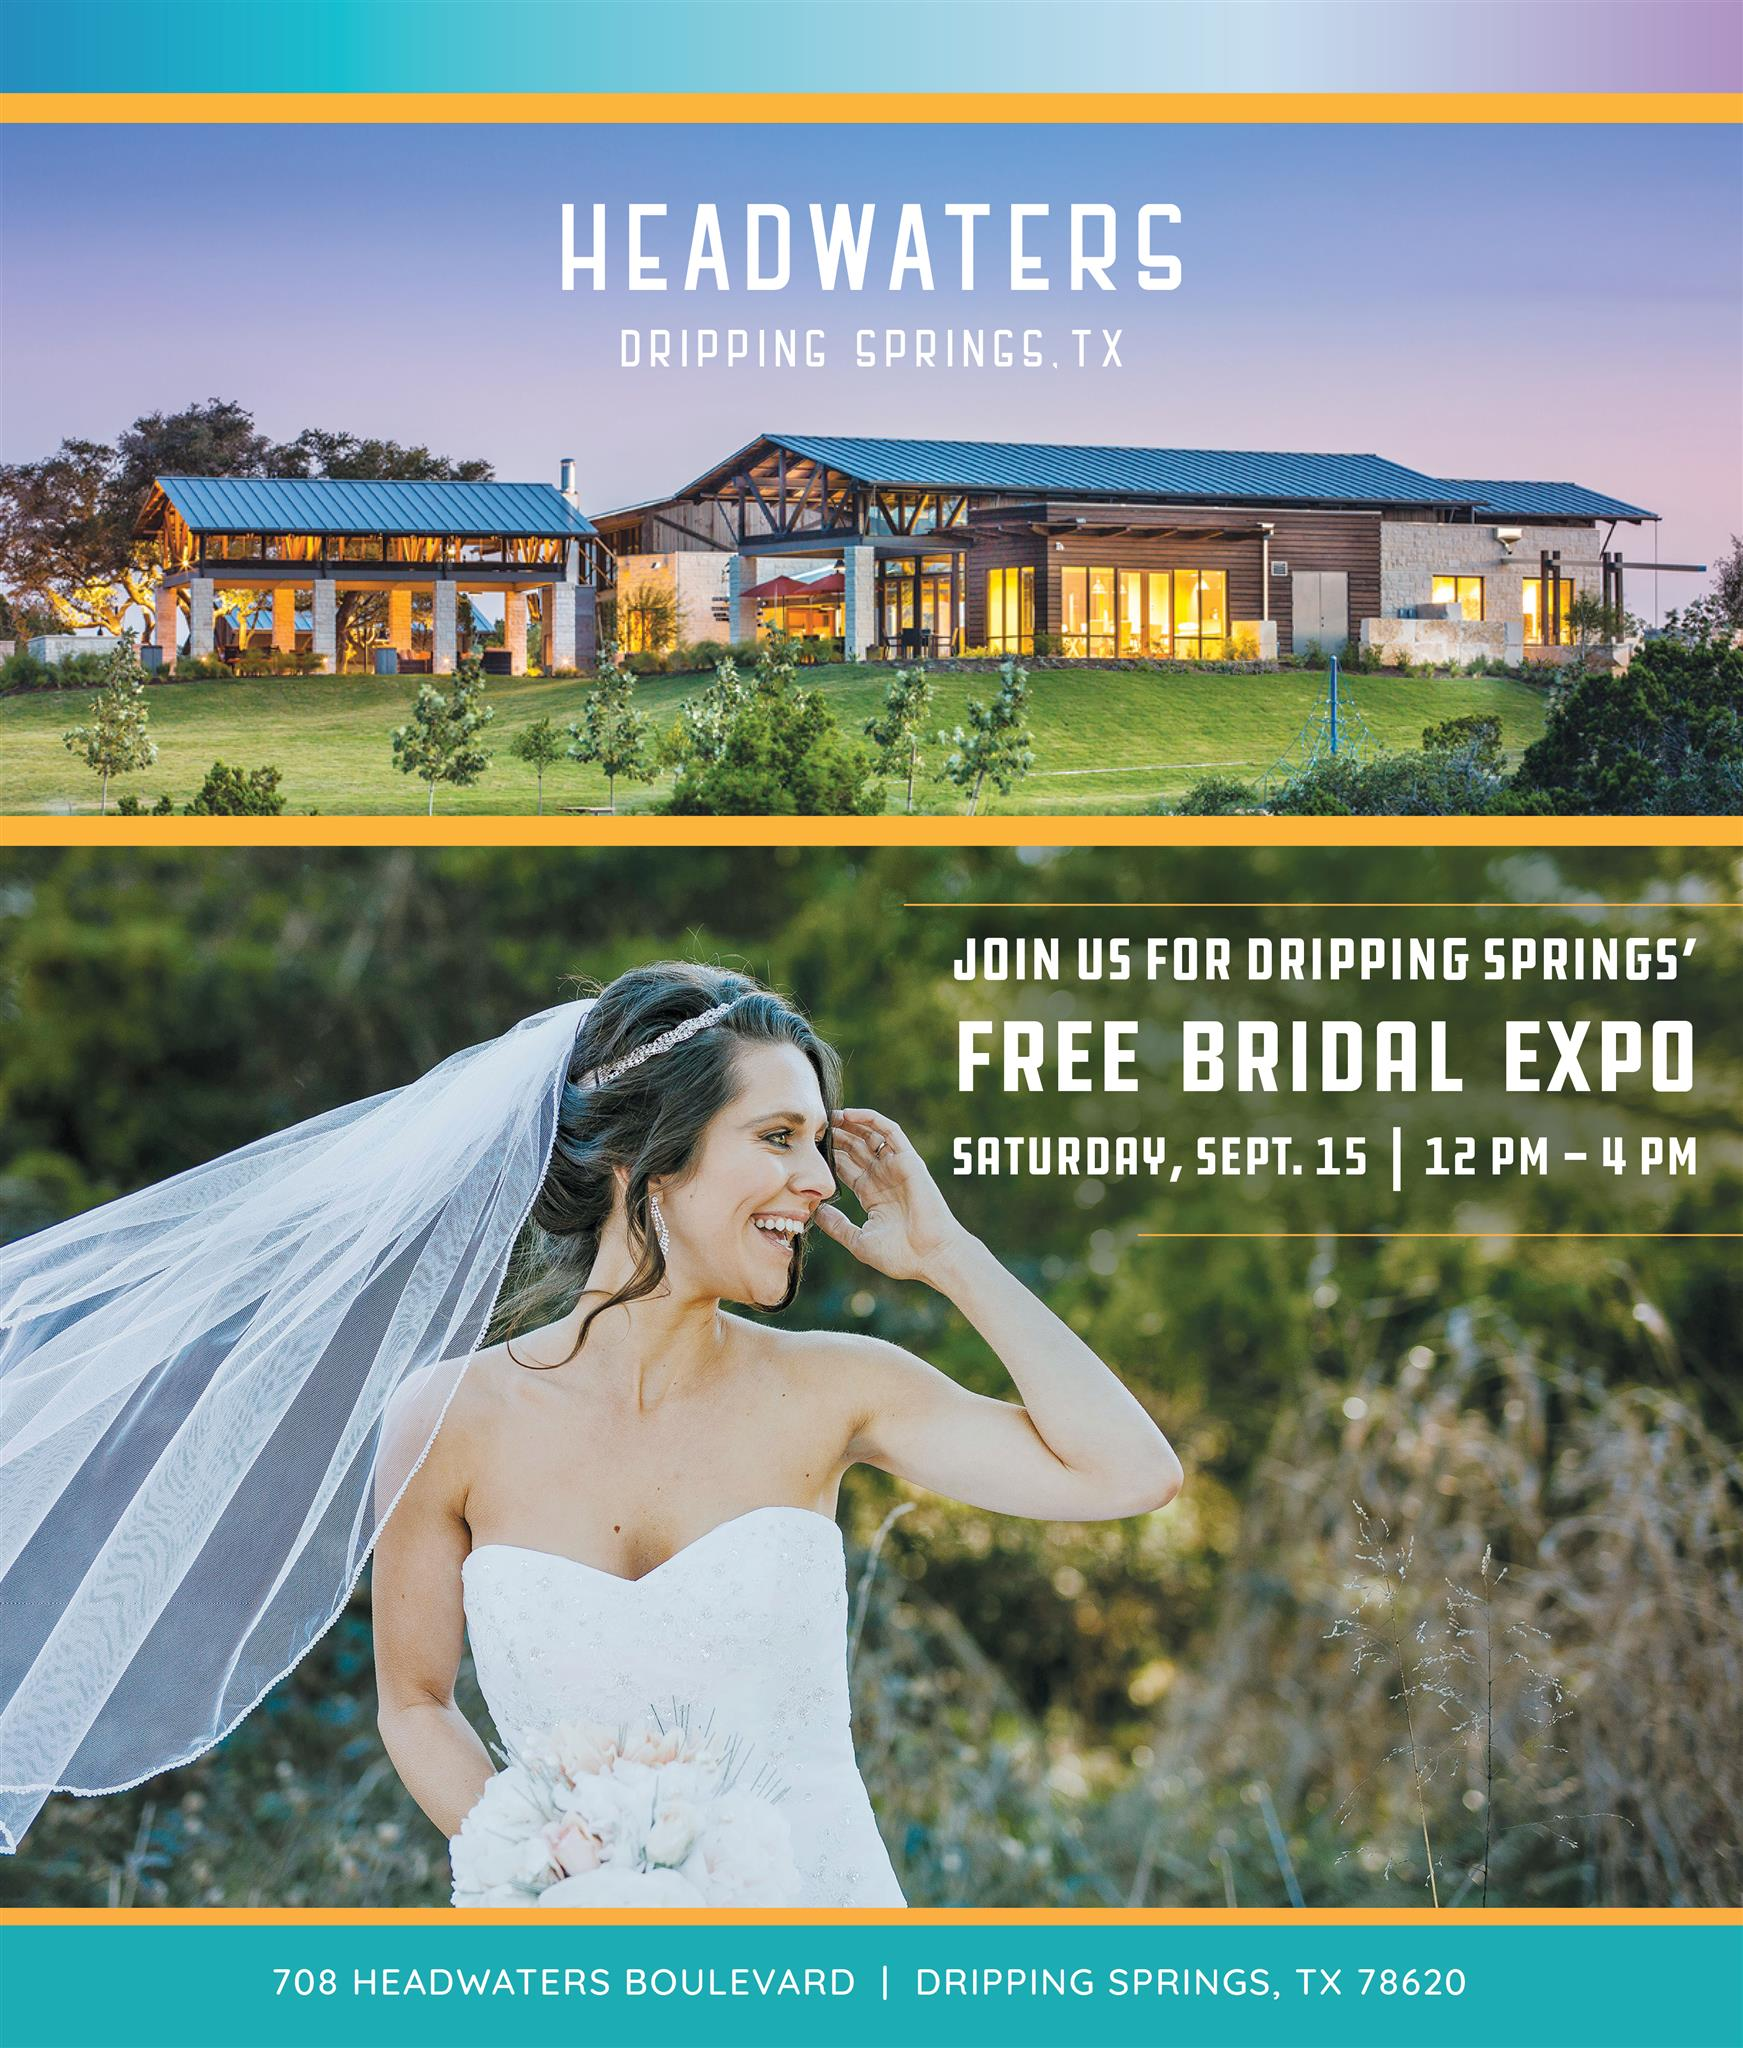 headwaters free bridal expo dripping springs